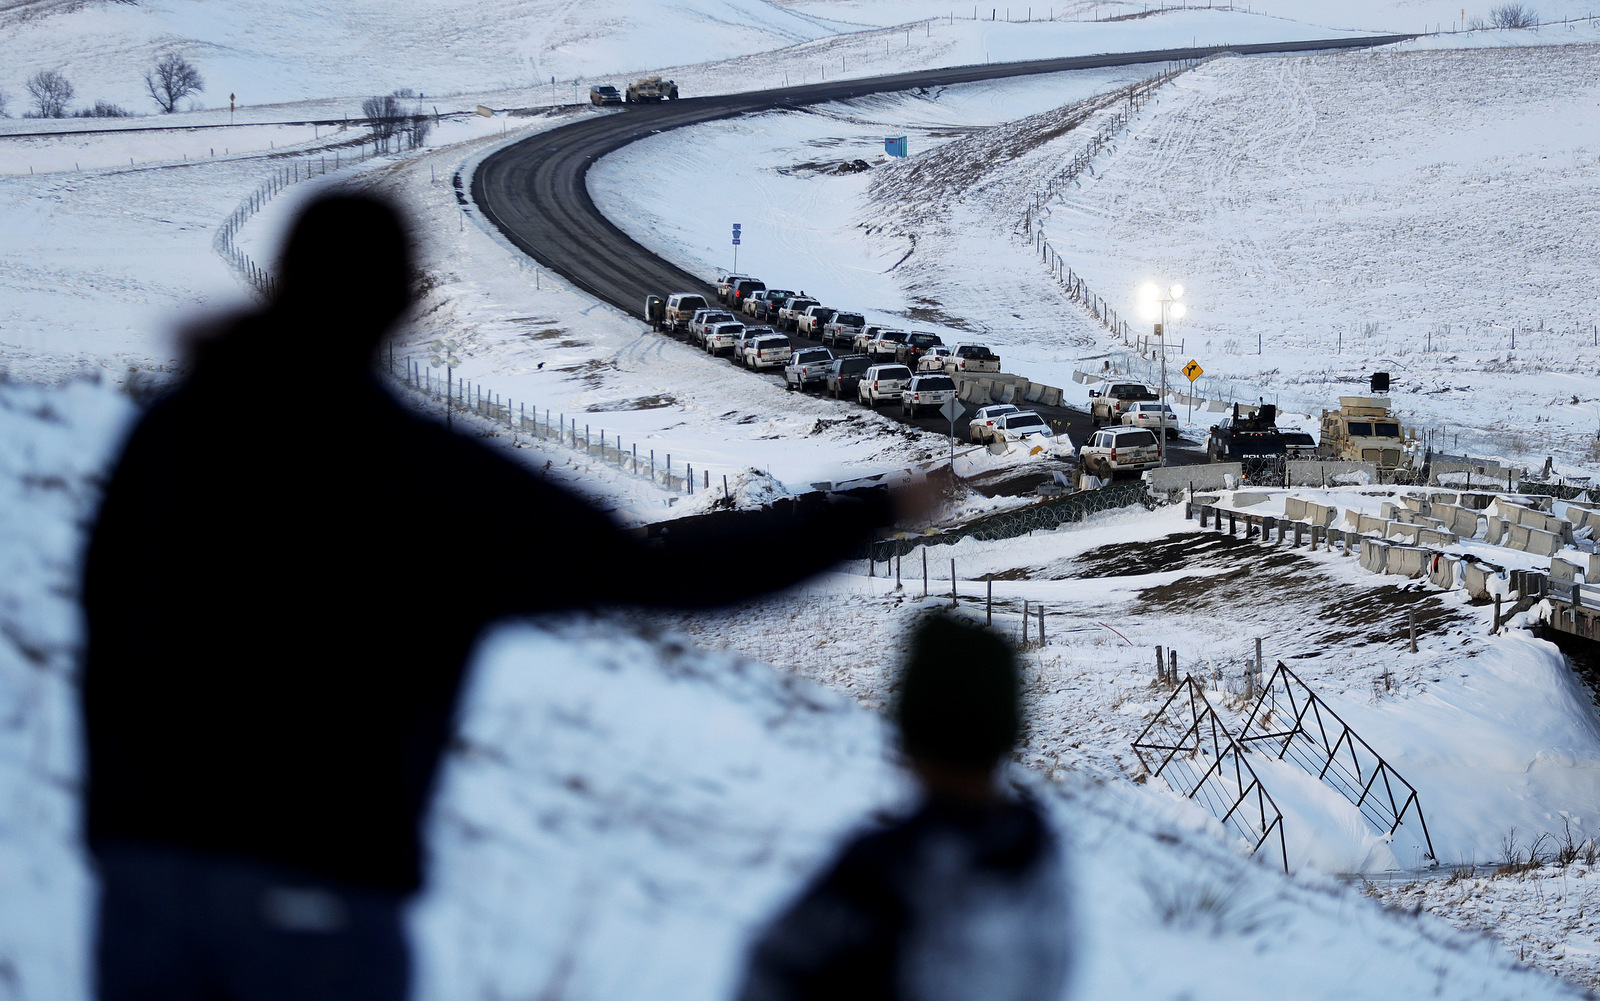 DAPL Opponents Vow 'Fierce Resistance' As Army Corps Grants Last Easement